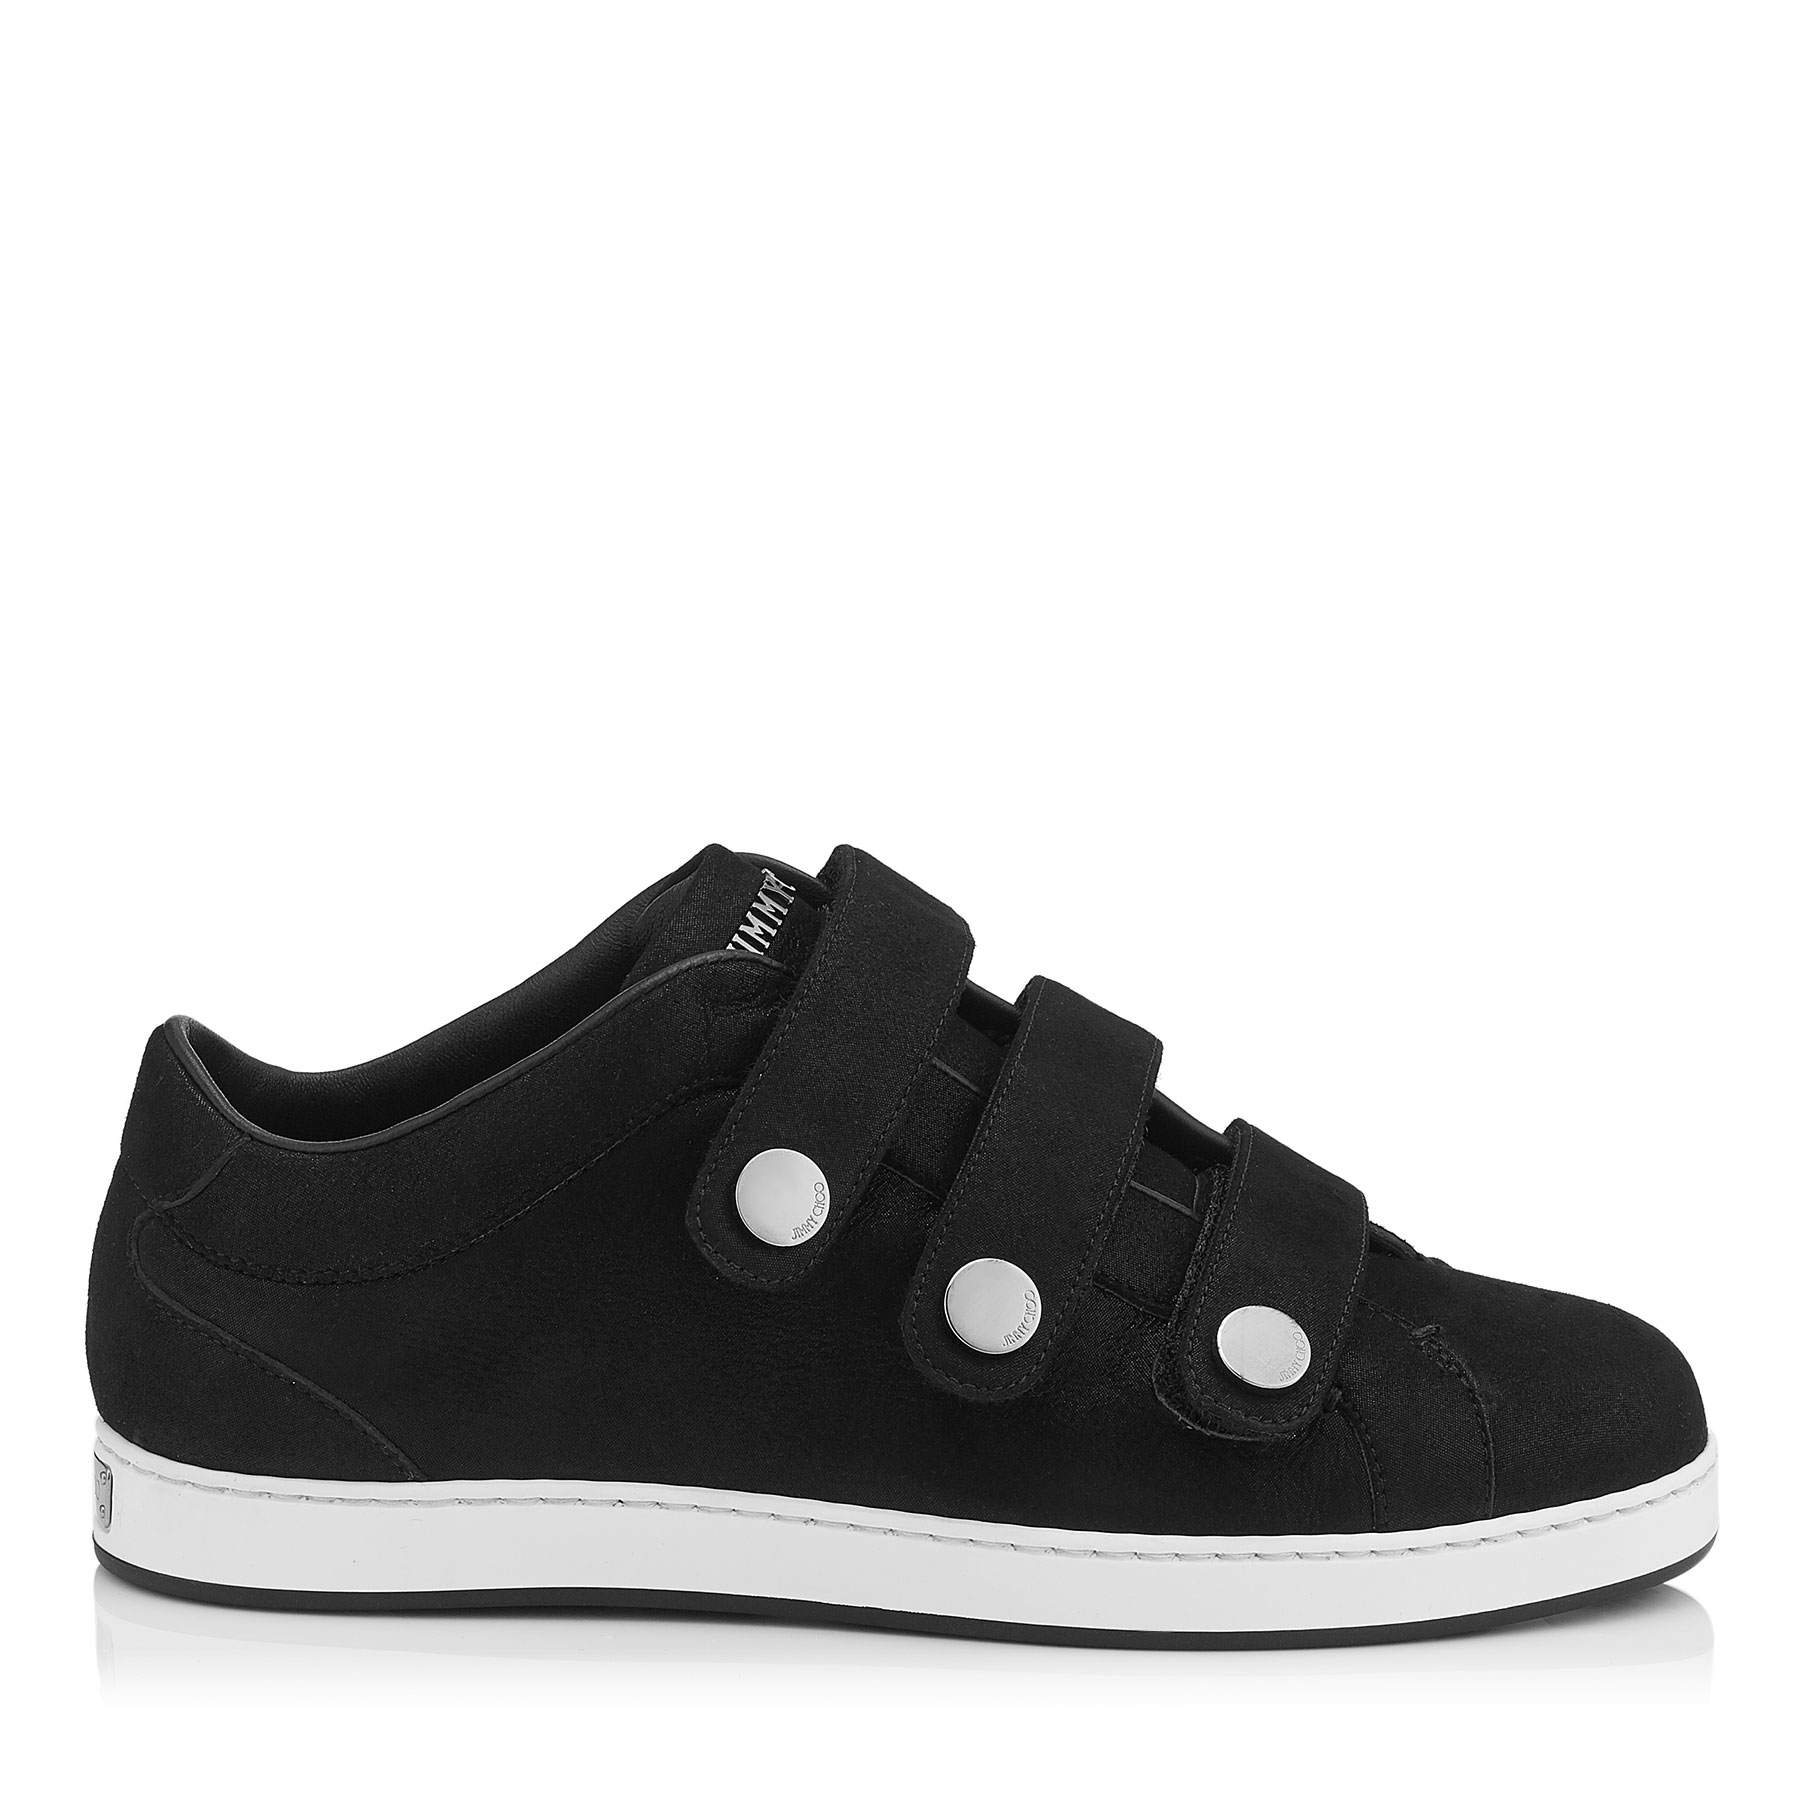 NY Black Shimmer Suede Trainers by Jimmy Choo